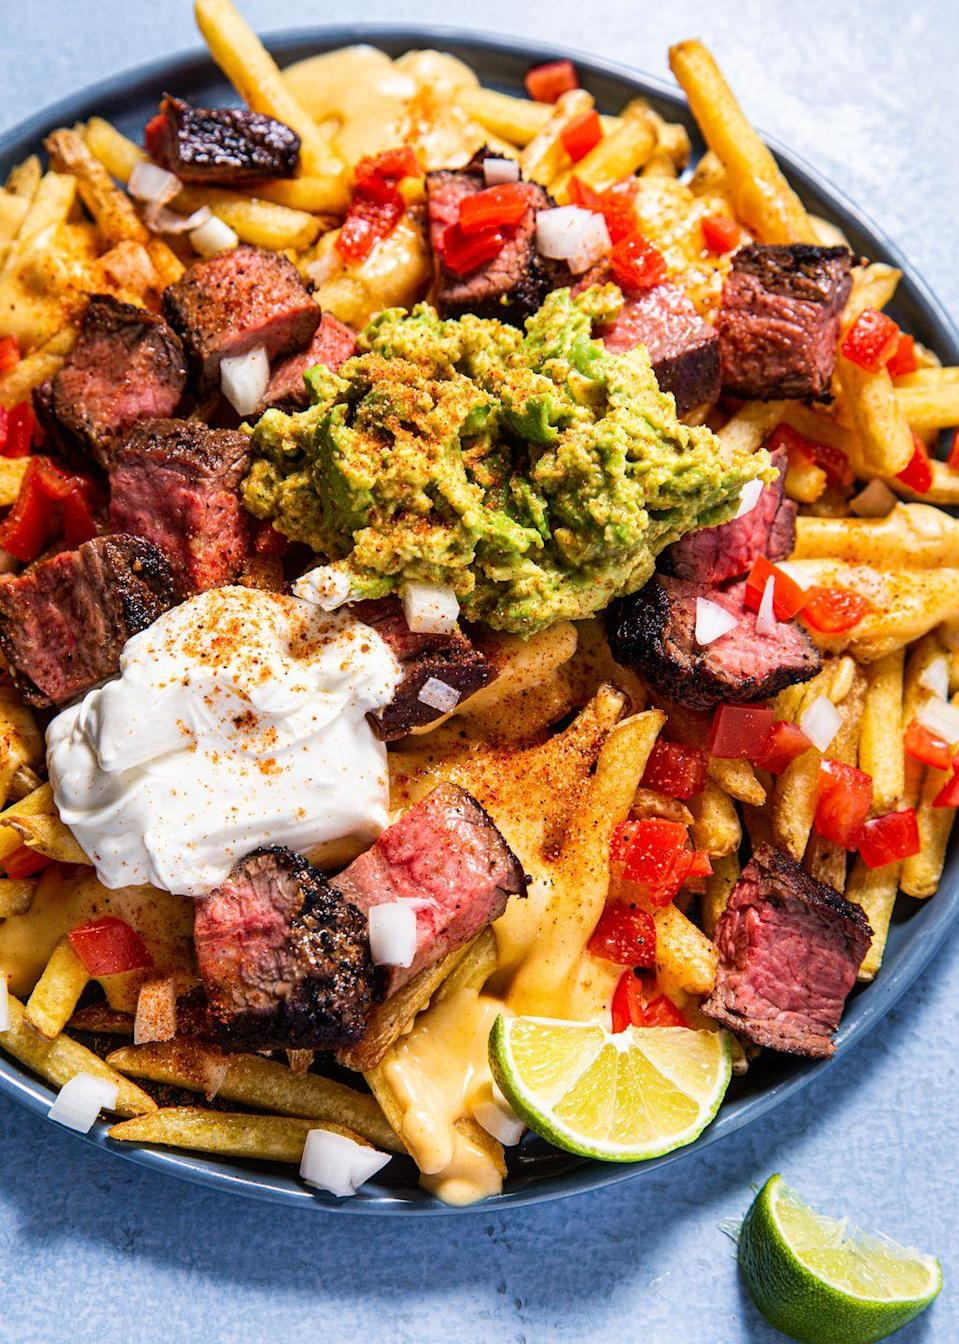 """<p>What a picture perfect plate of fries topped with a heaping amount of steak, guac, sour cream, lime, and more!</p><p>Get the recipe from <a href=""""https://www.delish.com/cooking/recipe-ideas/a30502519/carne-asada-fries-recipe/"""" rel=""""nofollow noopener"""" target=""""_blank"""" data-ylk=""""slk:Delish"""" class=""""link rapid-noclick-resp"""">Delish</a>.</p>"""